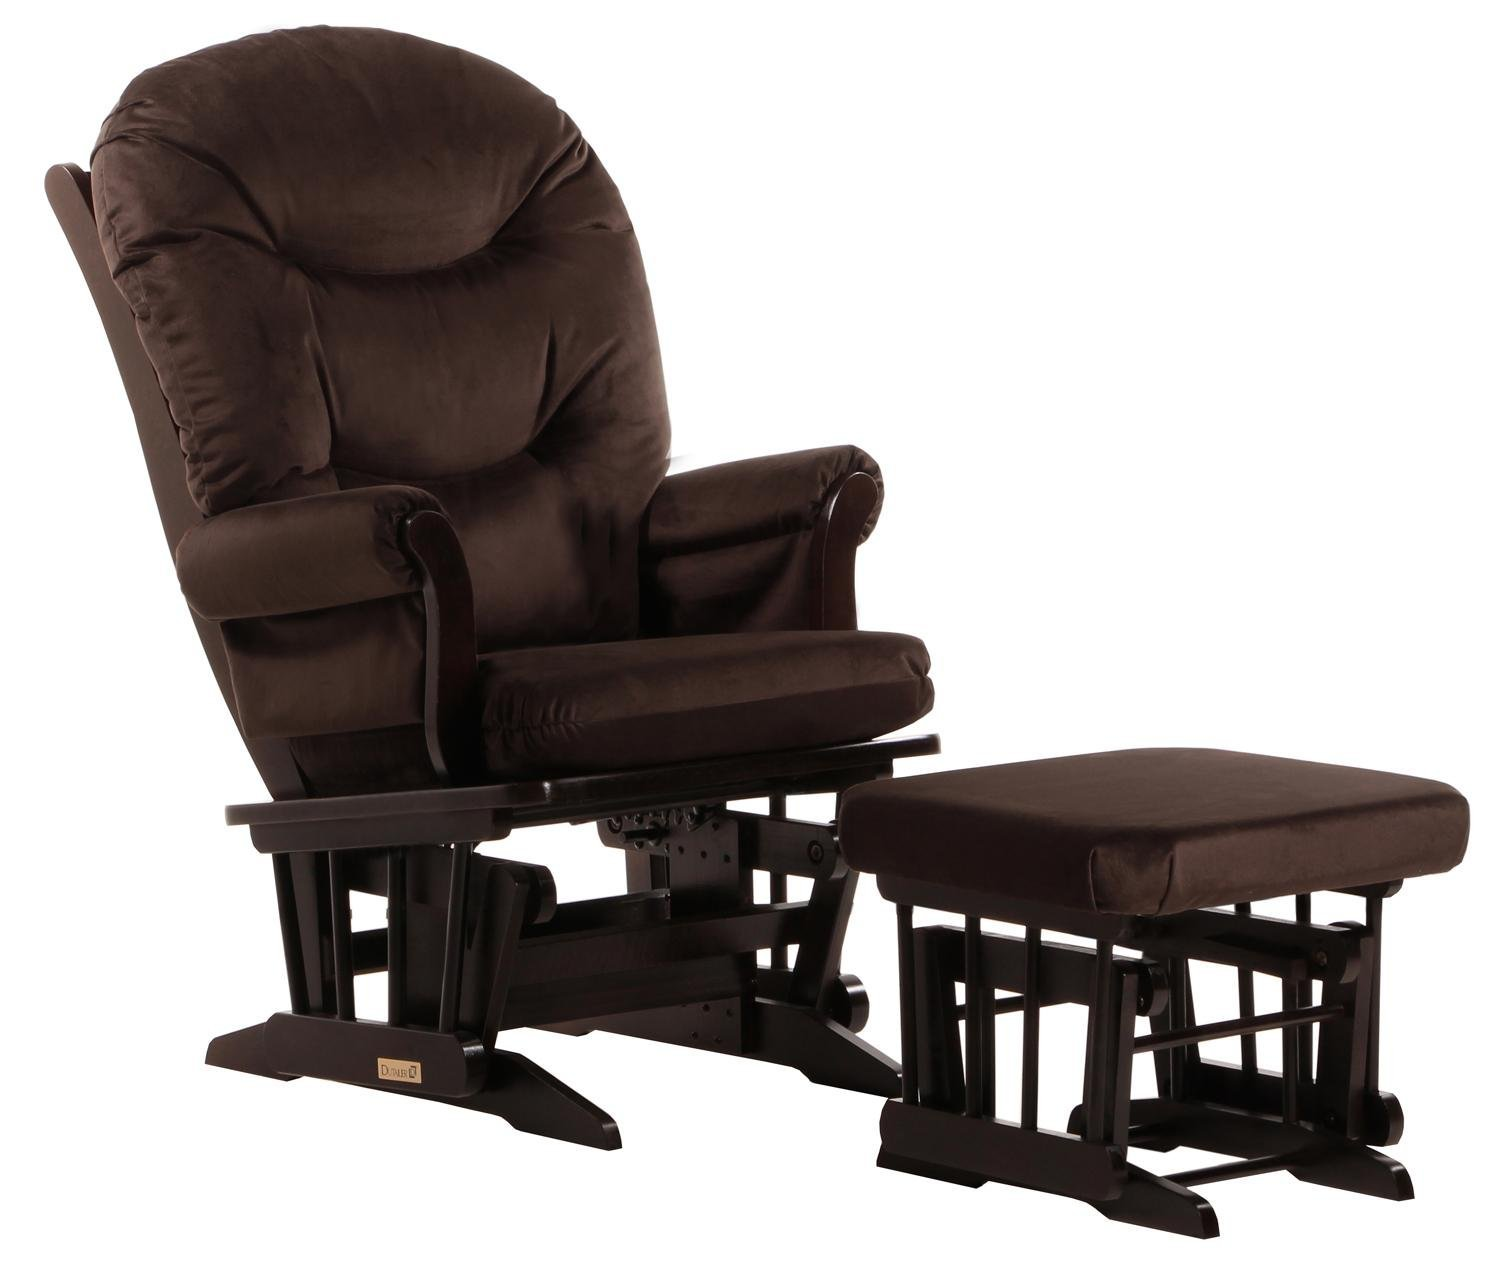 Dutailier SLEIGH 0339 Glider chair with Ottoman included by Dutailier